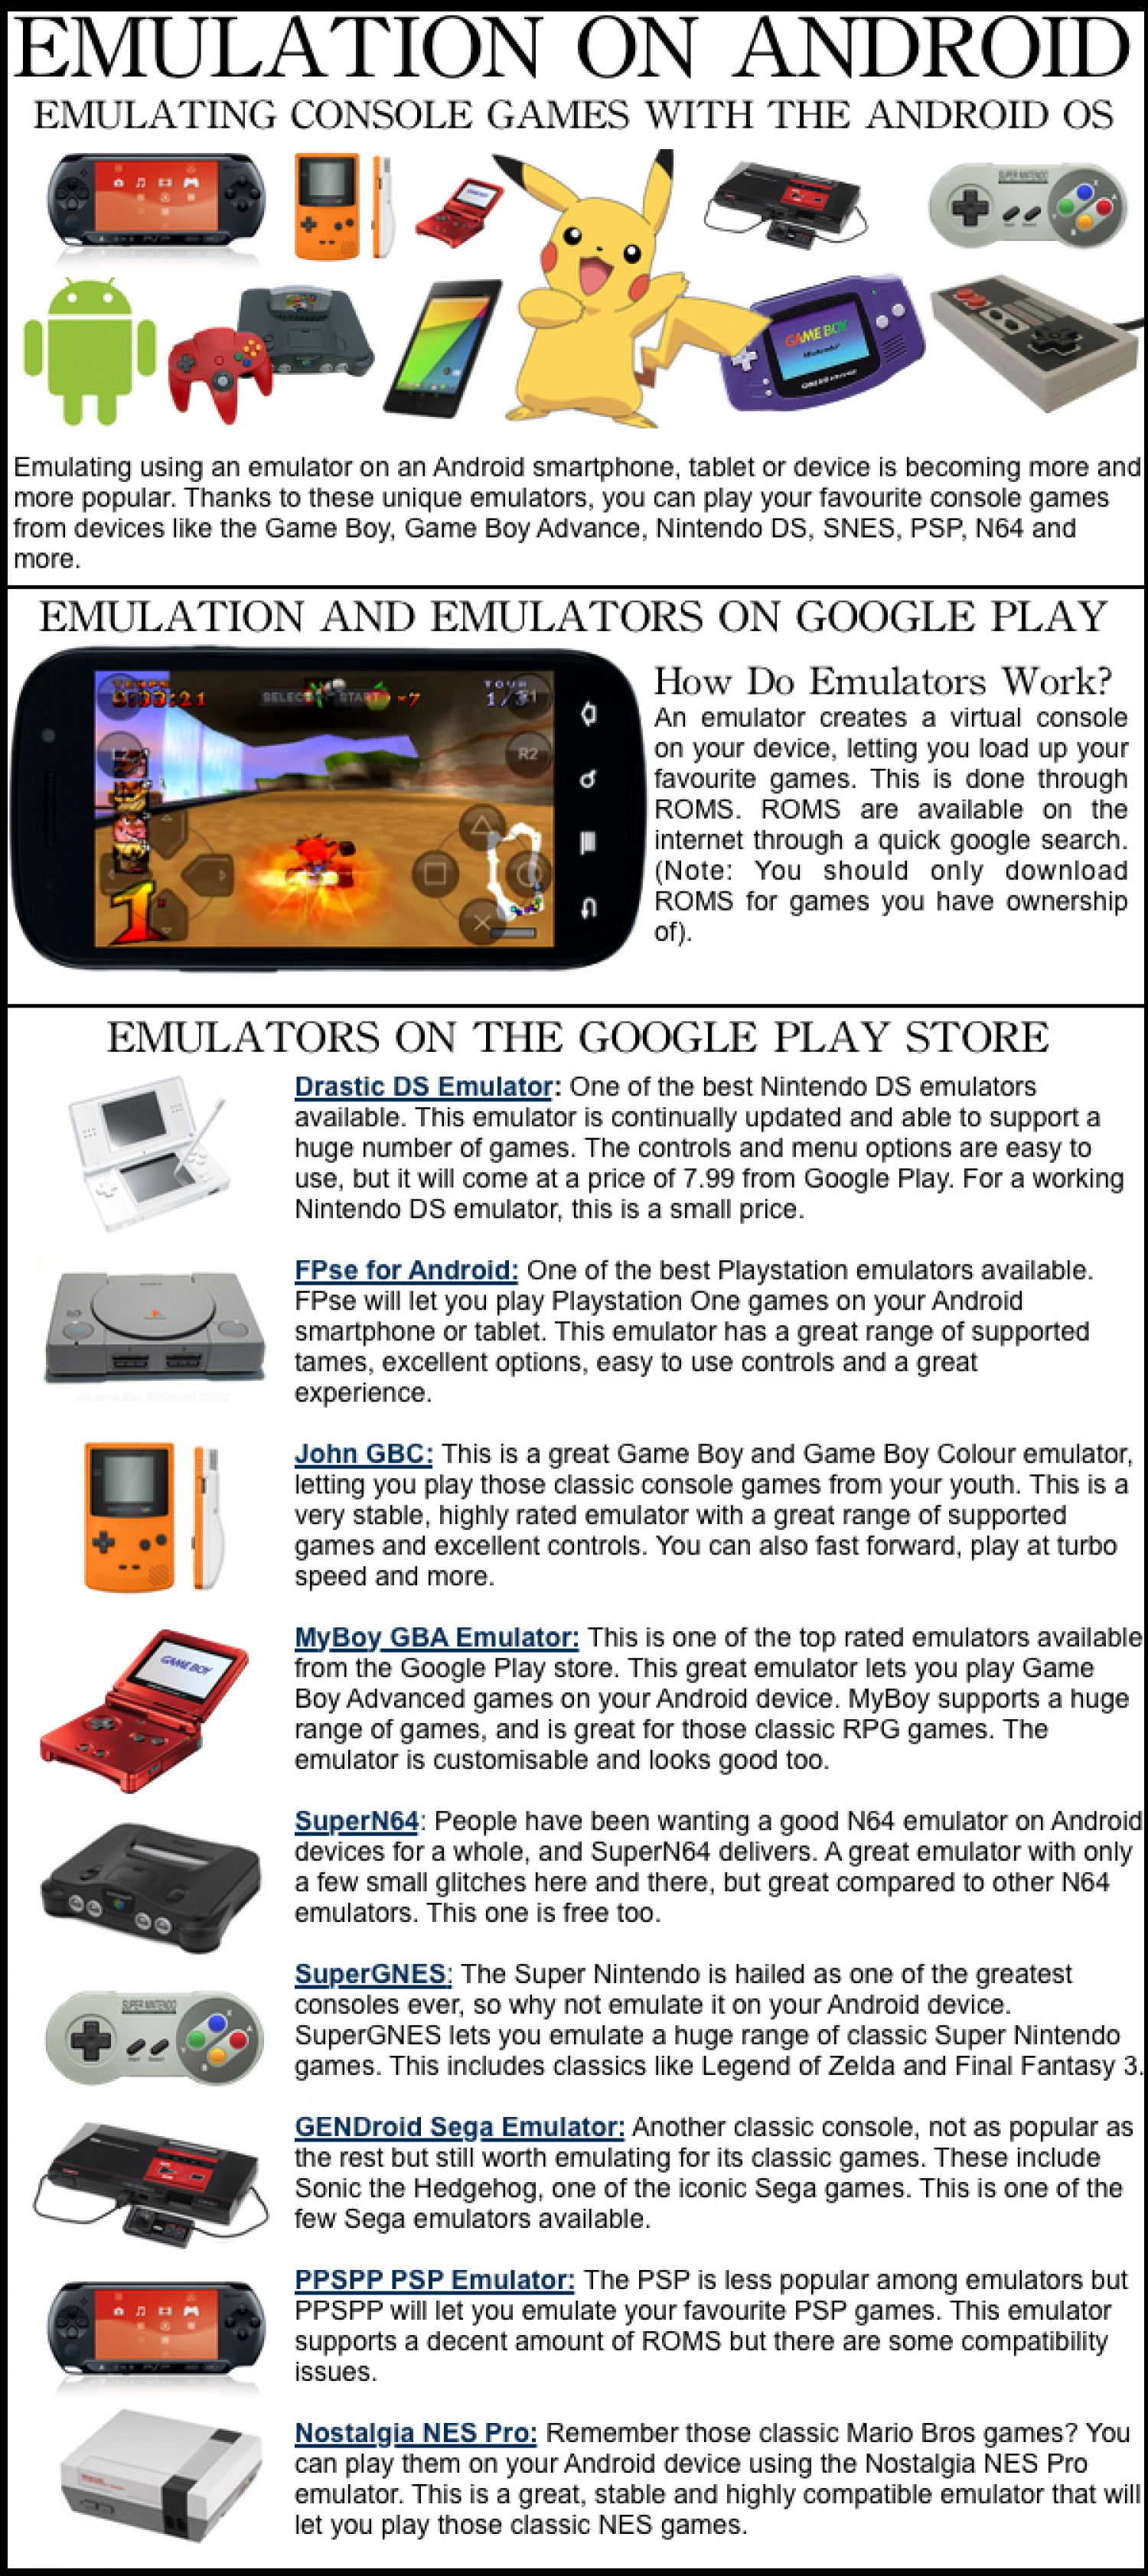 Android Emulation: Emulating Console Games on Android Infographic